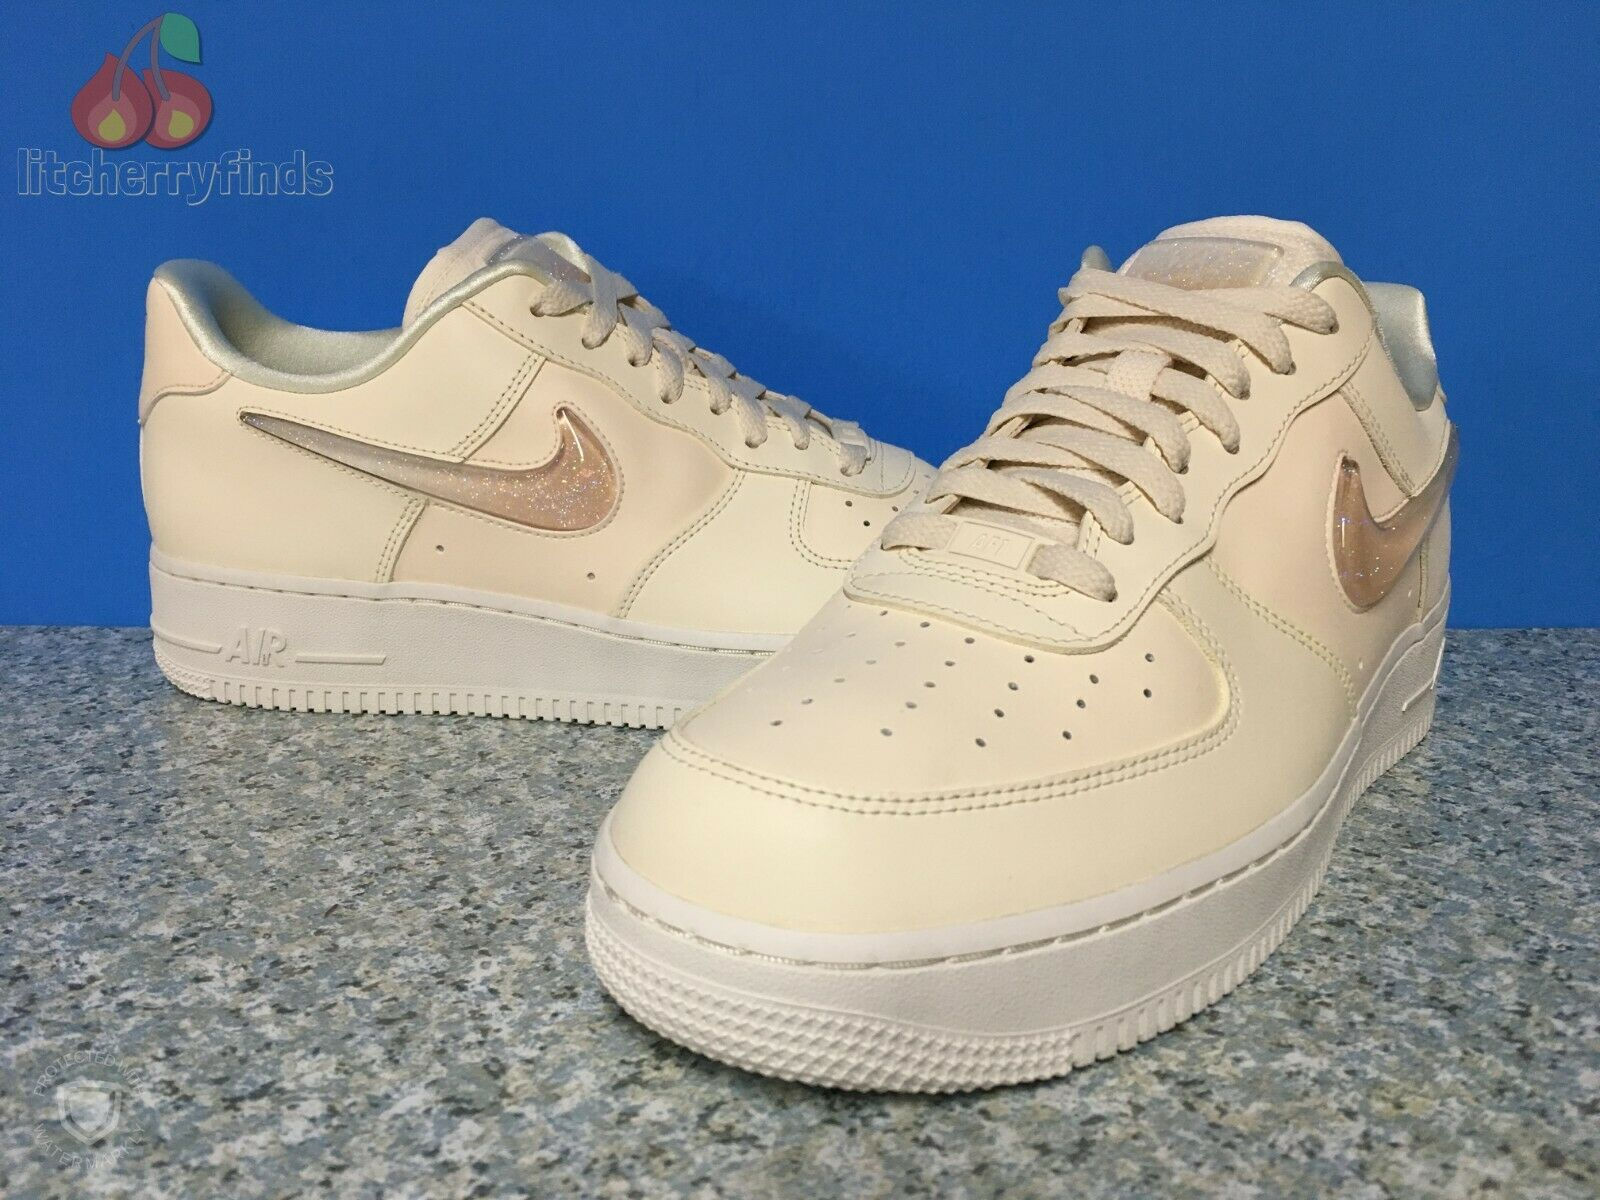 f6776c9f37 Nike Air Force 1 '07 SE PRM Womens Size Jelly Puff Pale Ivory Summit ...